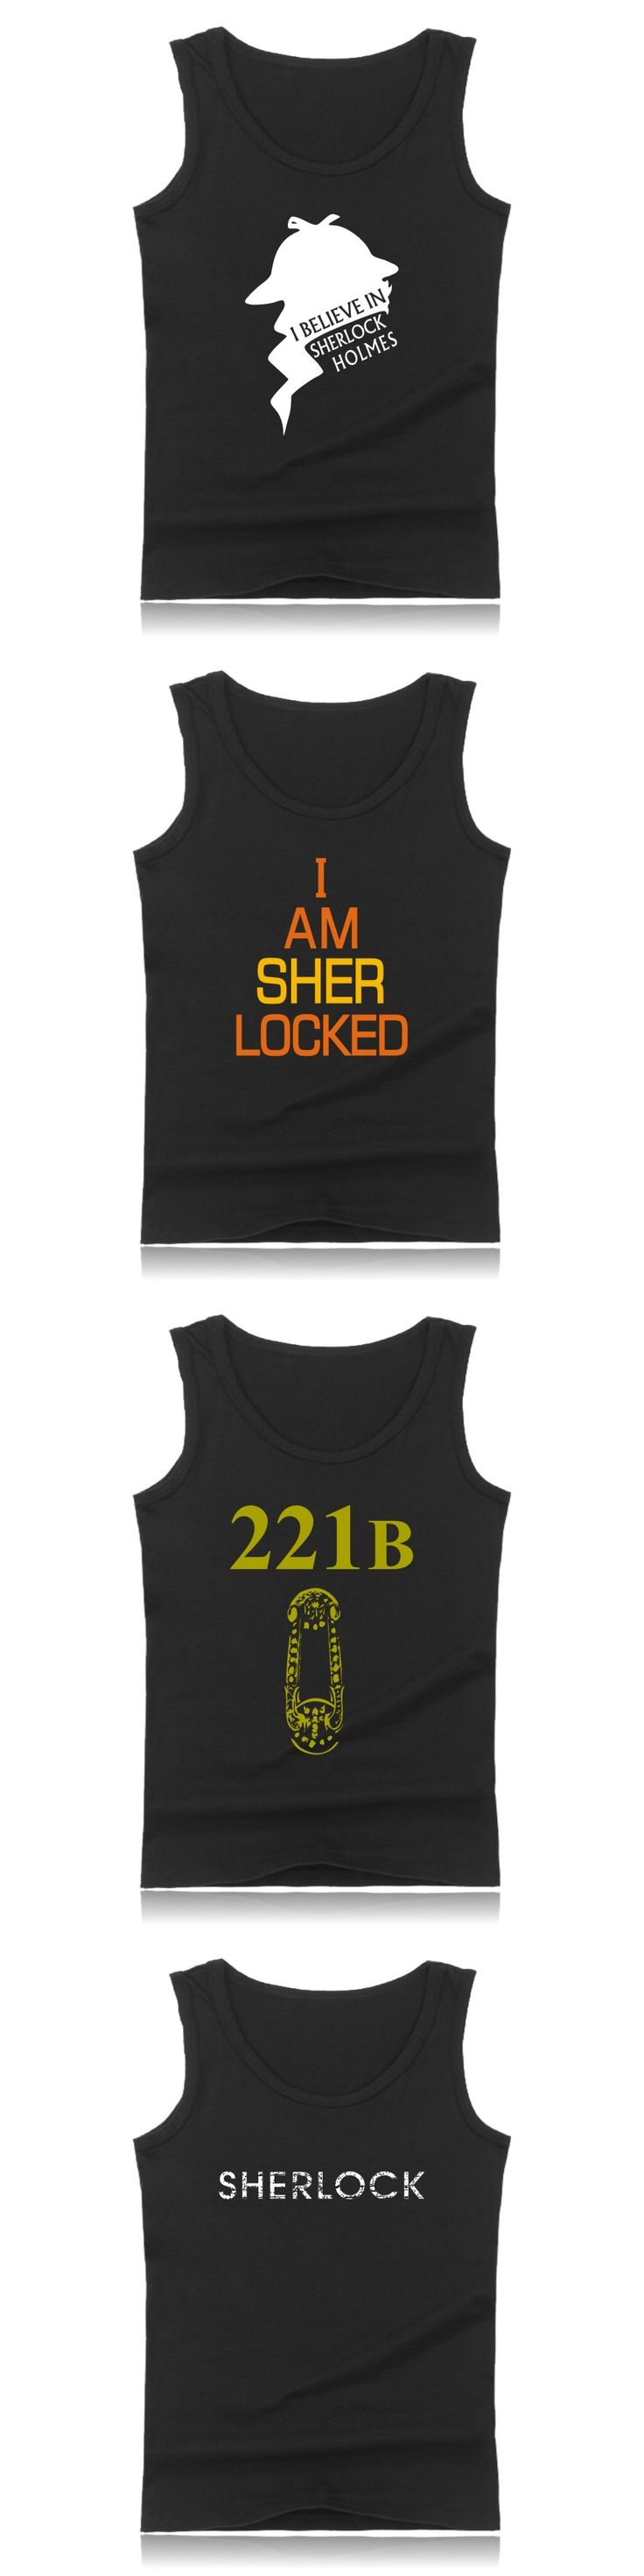 Summer Holmes Costume Casual Cotton Plus Size Muscle Tank Tops For Men And I Am Sherlock Mens Hot Sale Bodybuilding Tank Tops